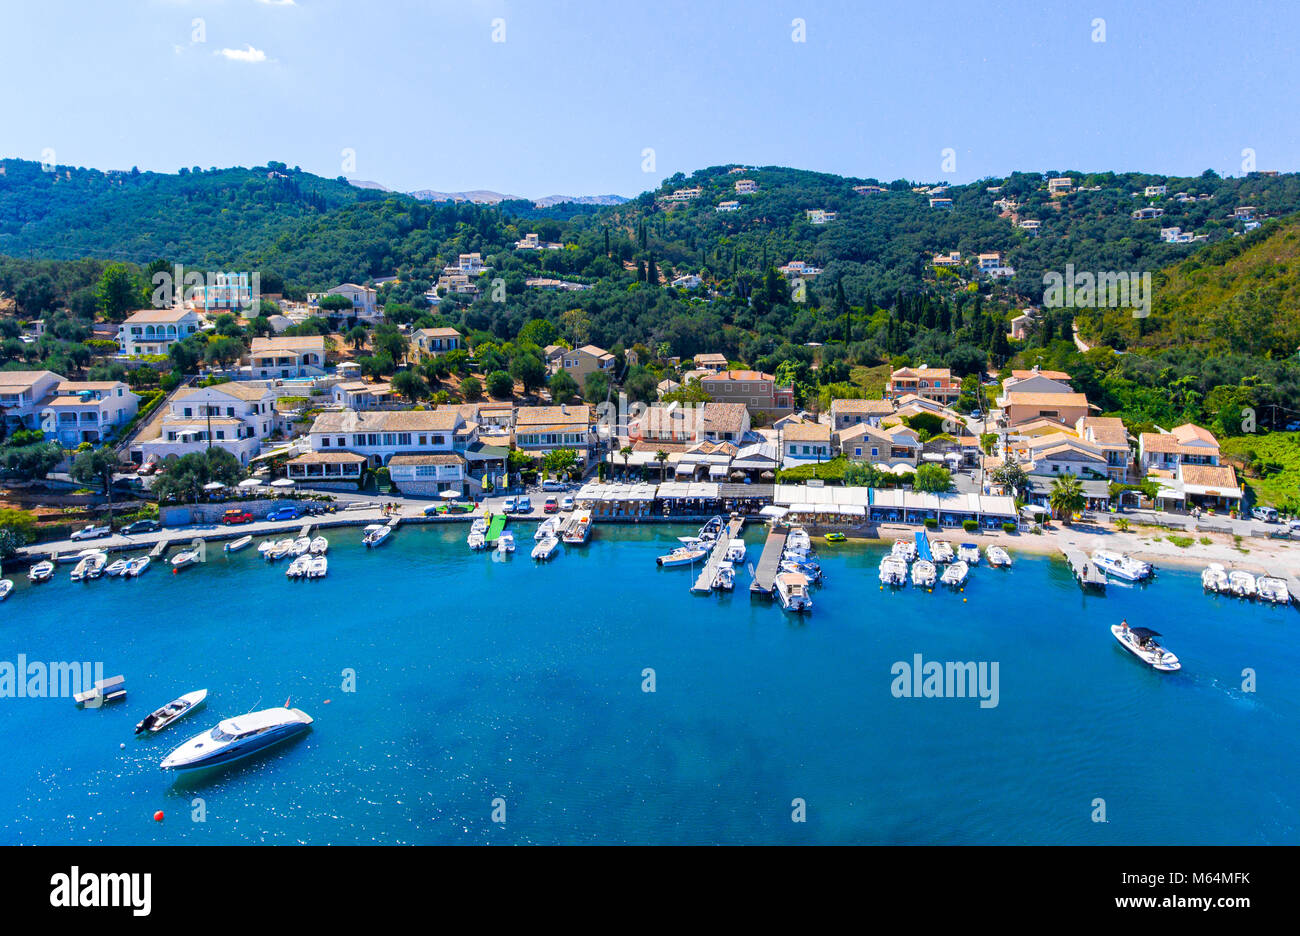 Agios Stefanos bay, one of the most beautiful fishing villages in Corfu Island. Kerkyra, Greece. - Stock Image